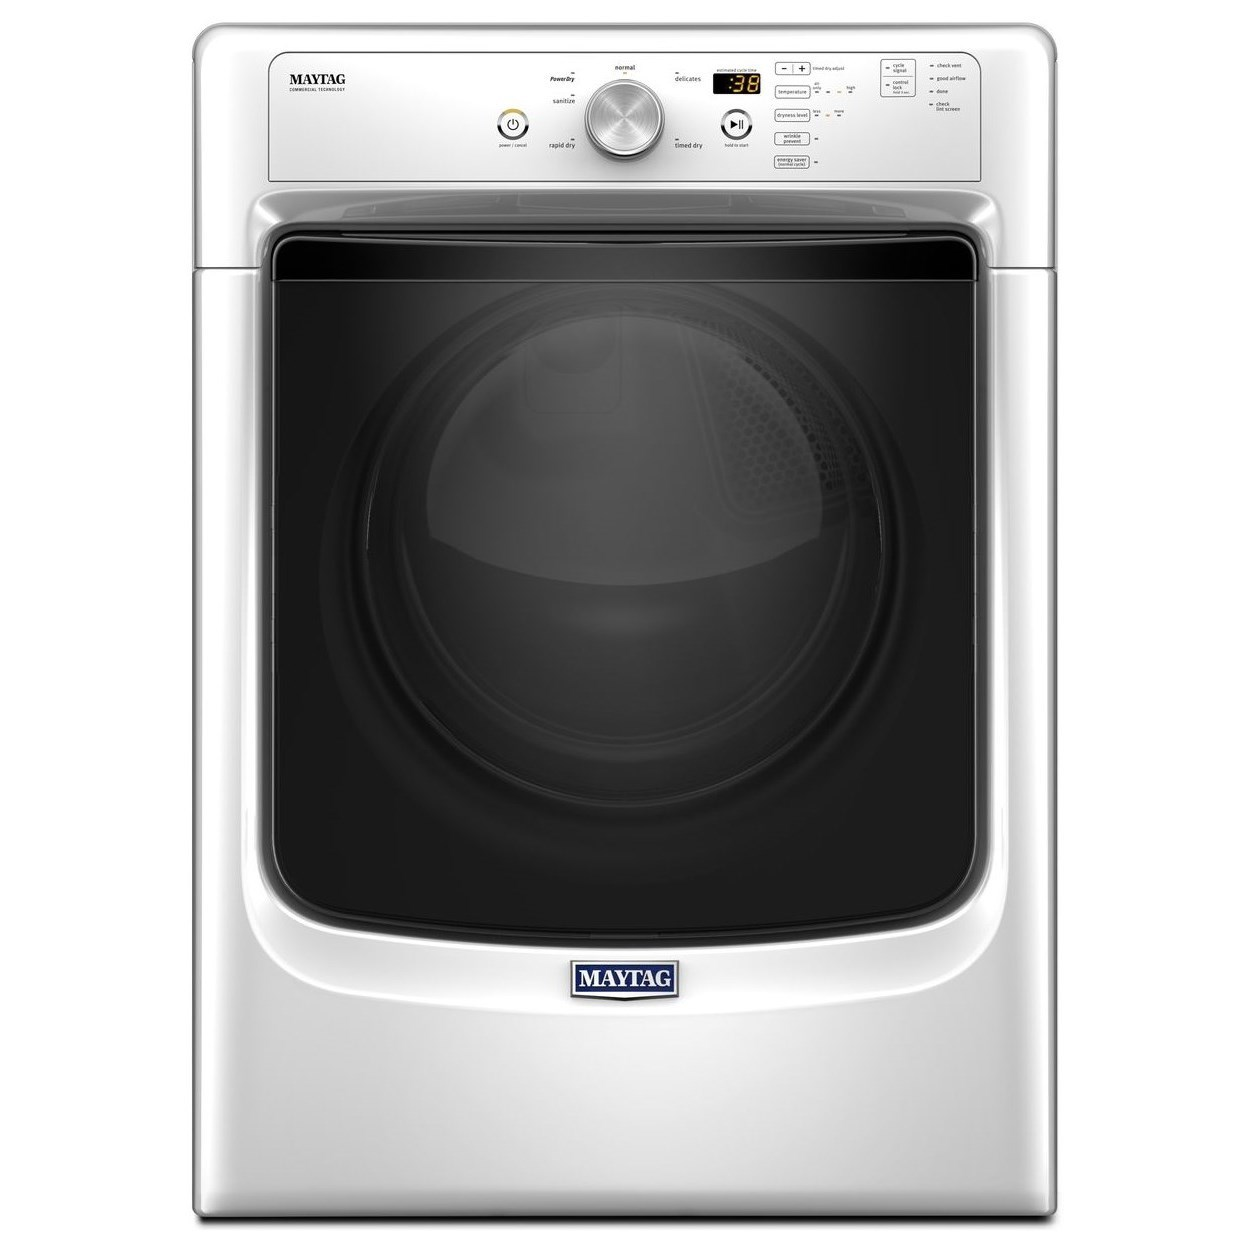 Maytag Front Load Gas Dryer 3500 Series 7.4 Cu. Ft Large Capacity Dryer - Item Number: MGD3500FW